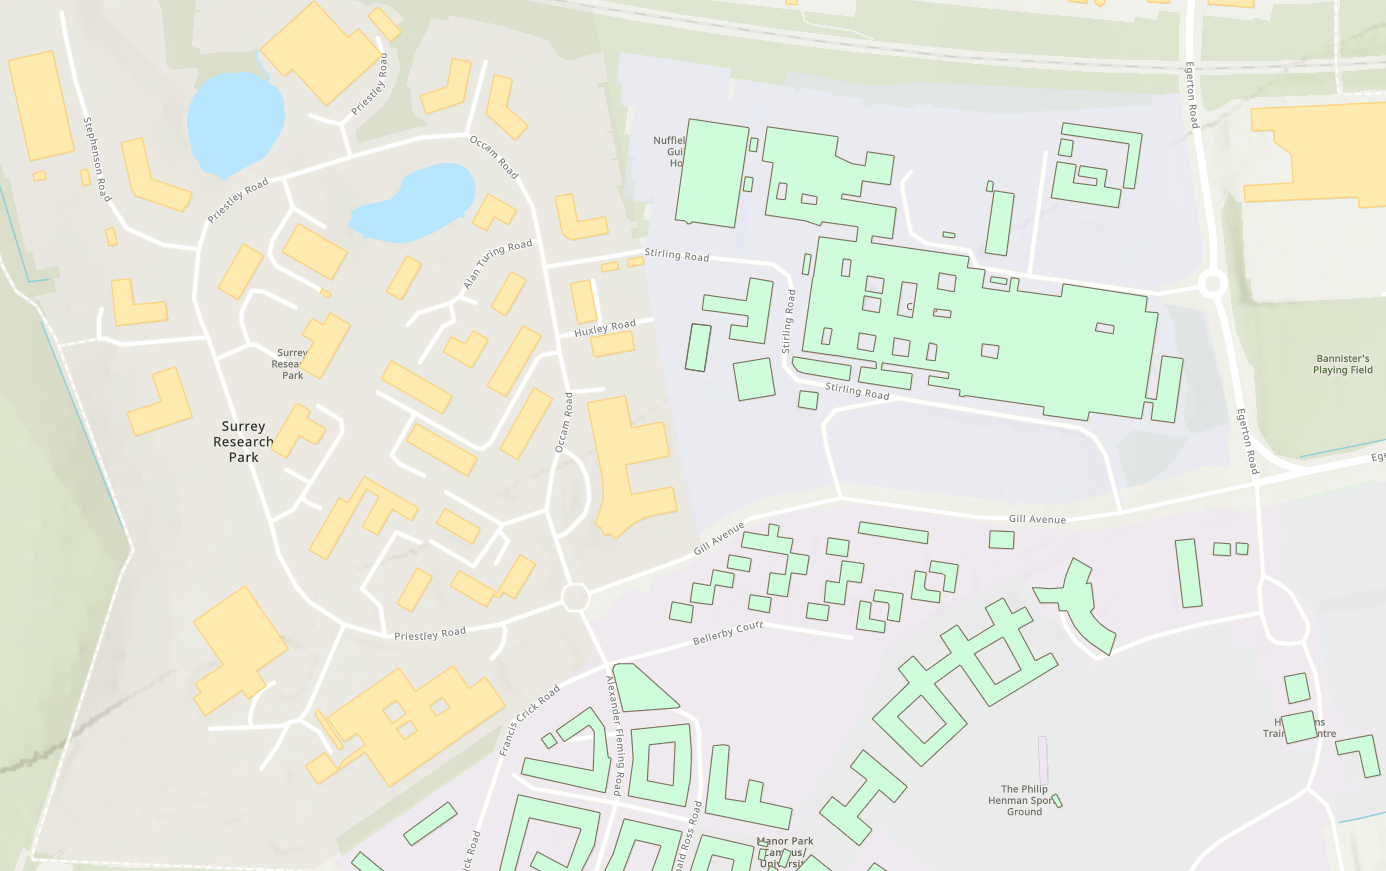 OS OpenMap Local buildings and Important Buildings available in the ArcGIS Living Atlas.